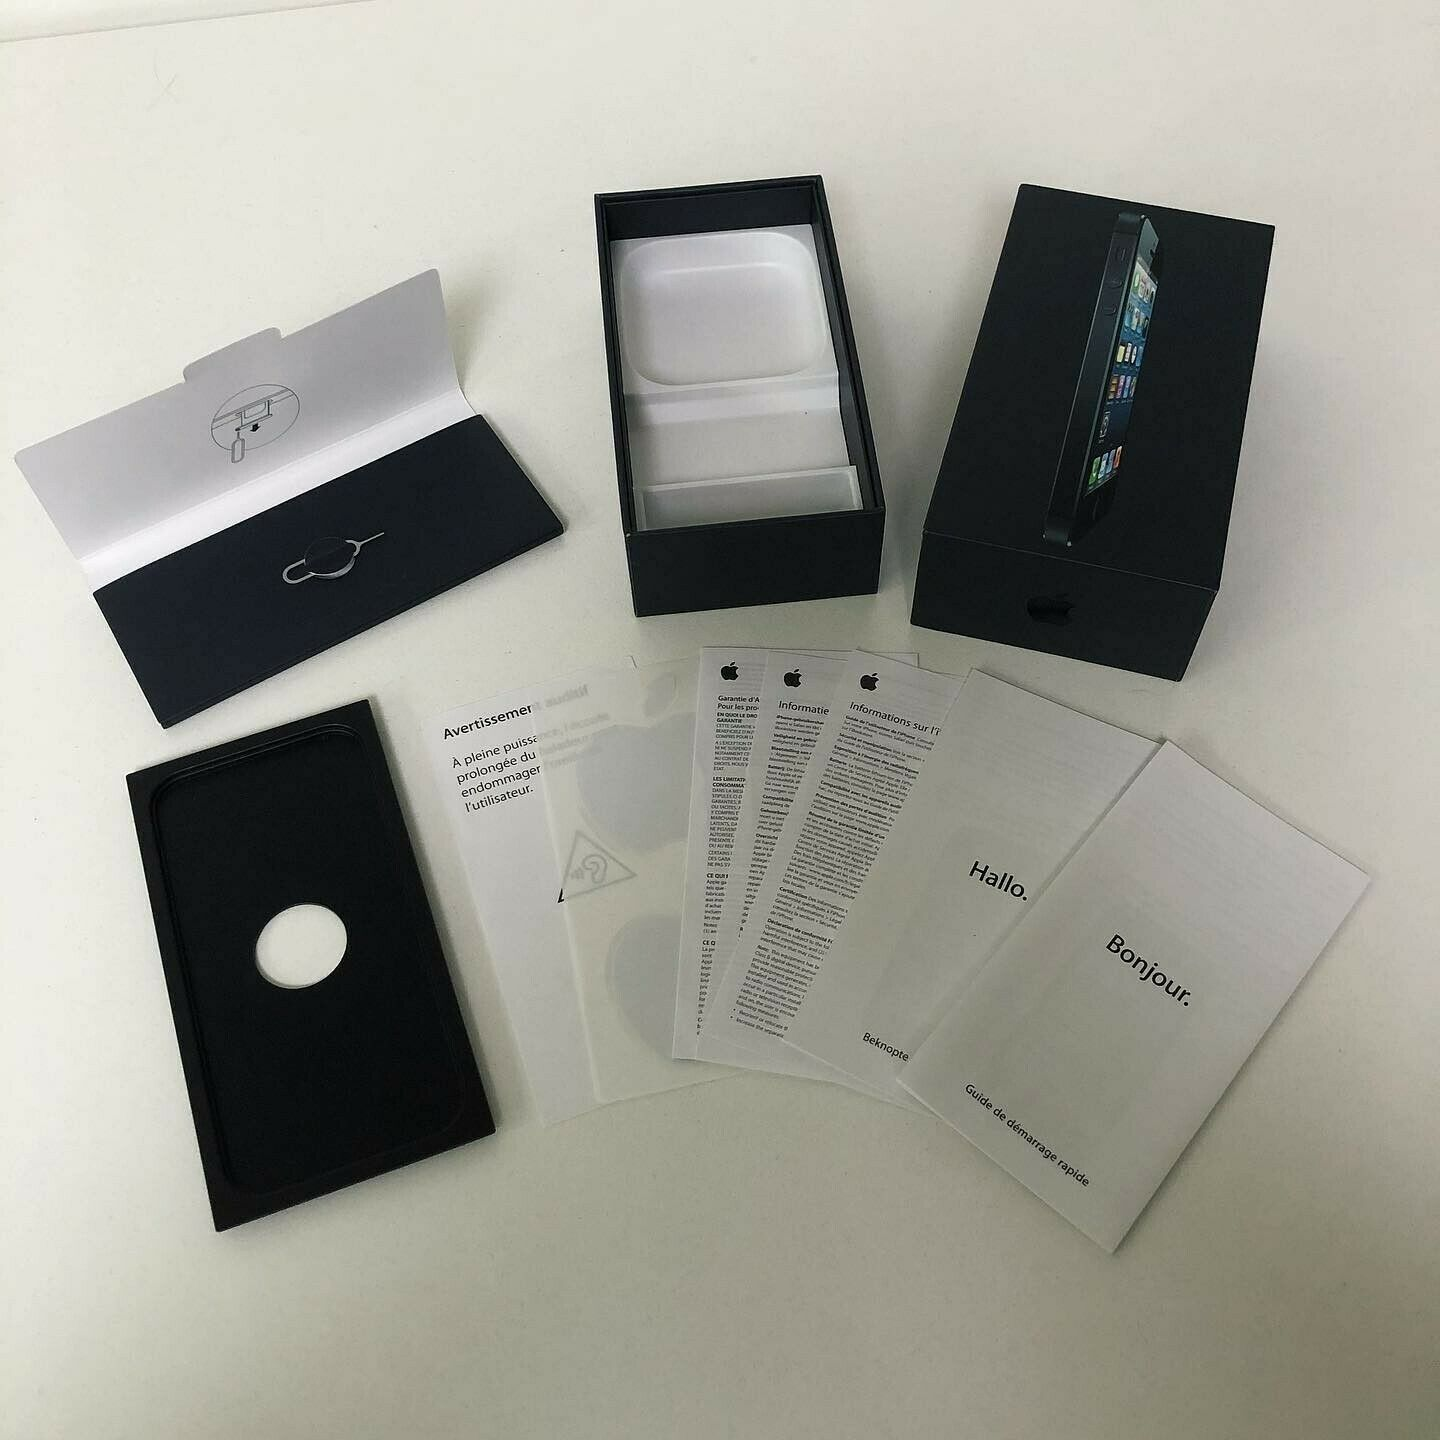 Apple iPhone 5 16GB Black BOX ONLY (+ paperwork, Apple stickers, ...)